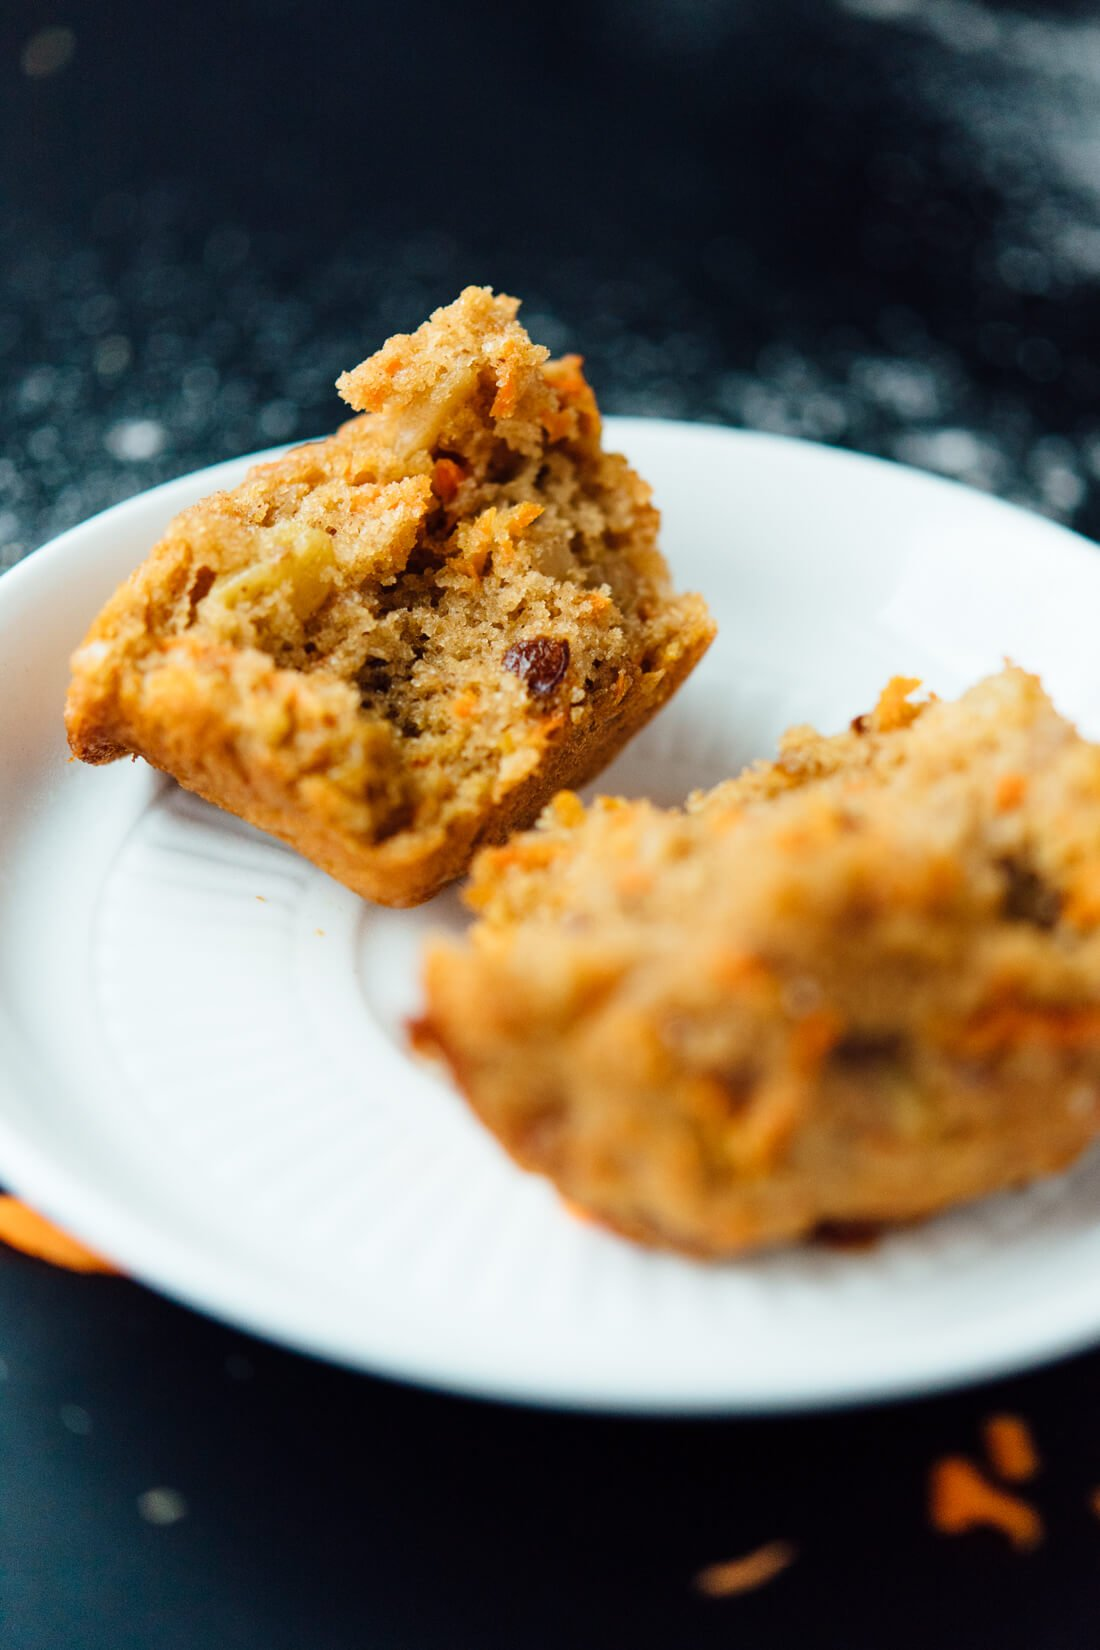 Whole grain, naturally sweetened carrot muffins CAN be delicious!